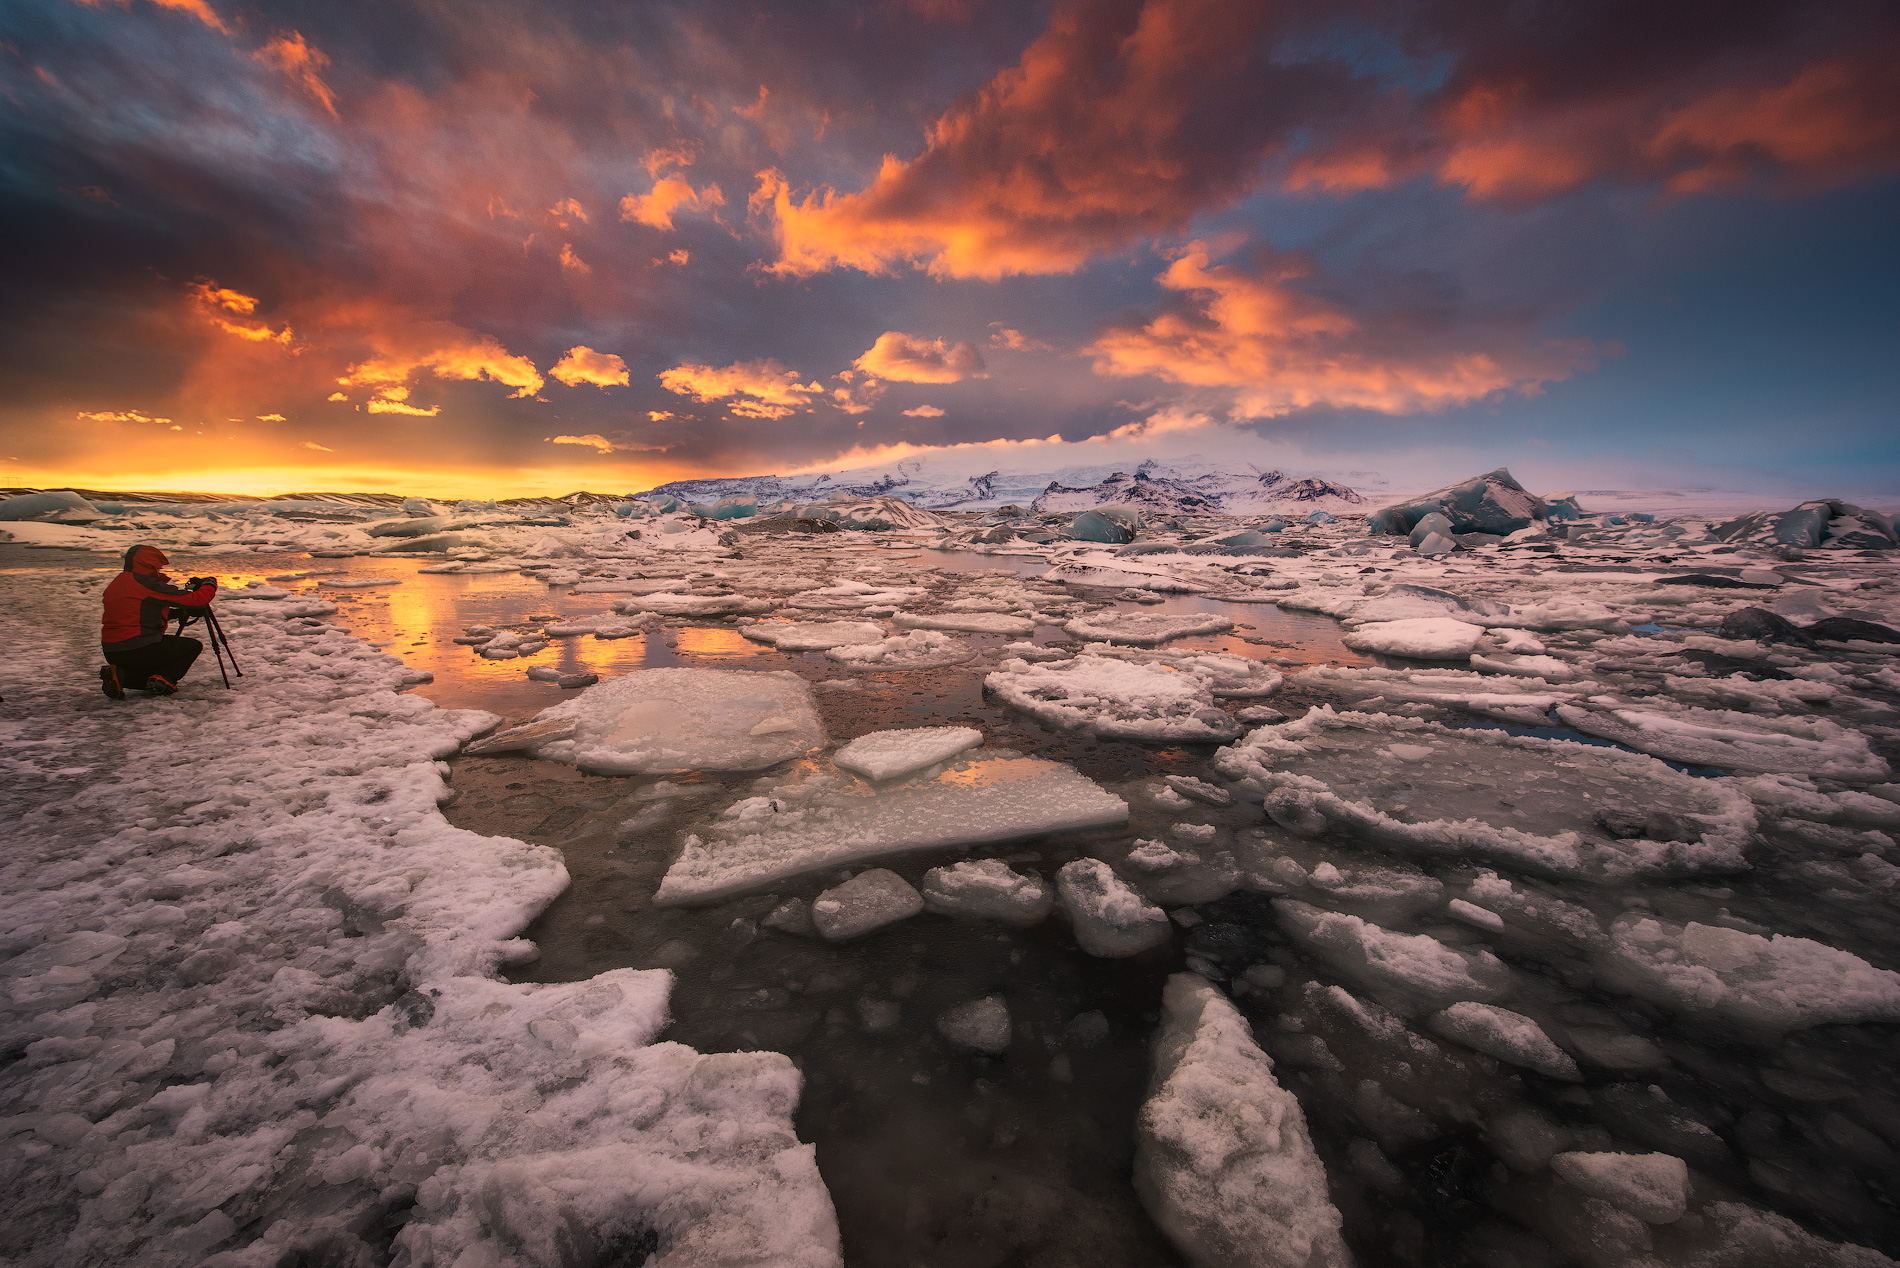 Jökulsárlón glacier lagoon is one of the most beautiful sites in the whole of Iceland.